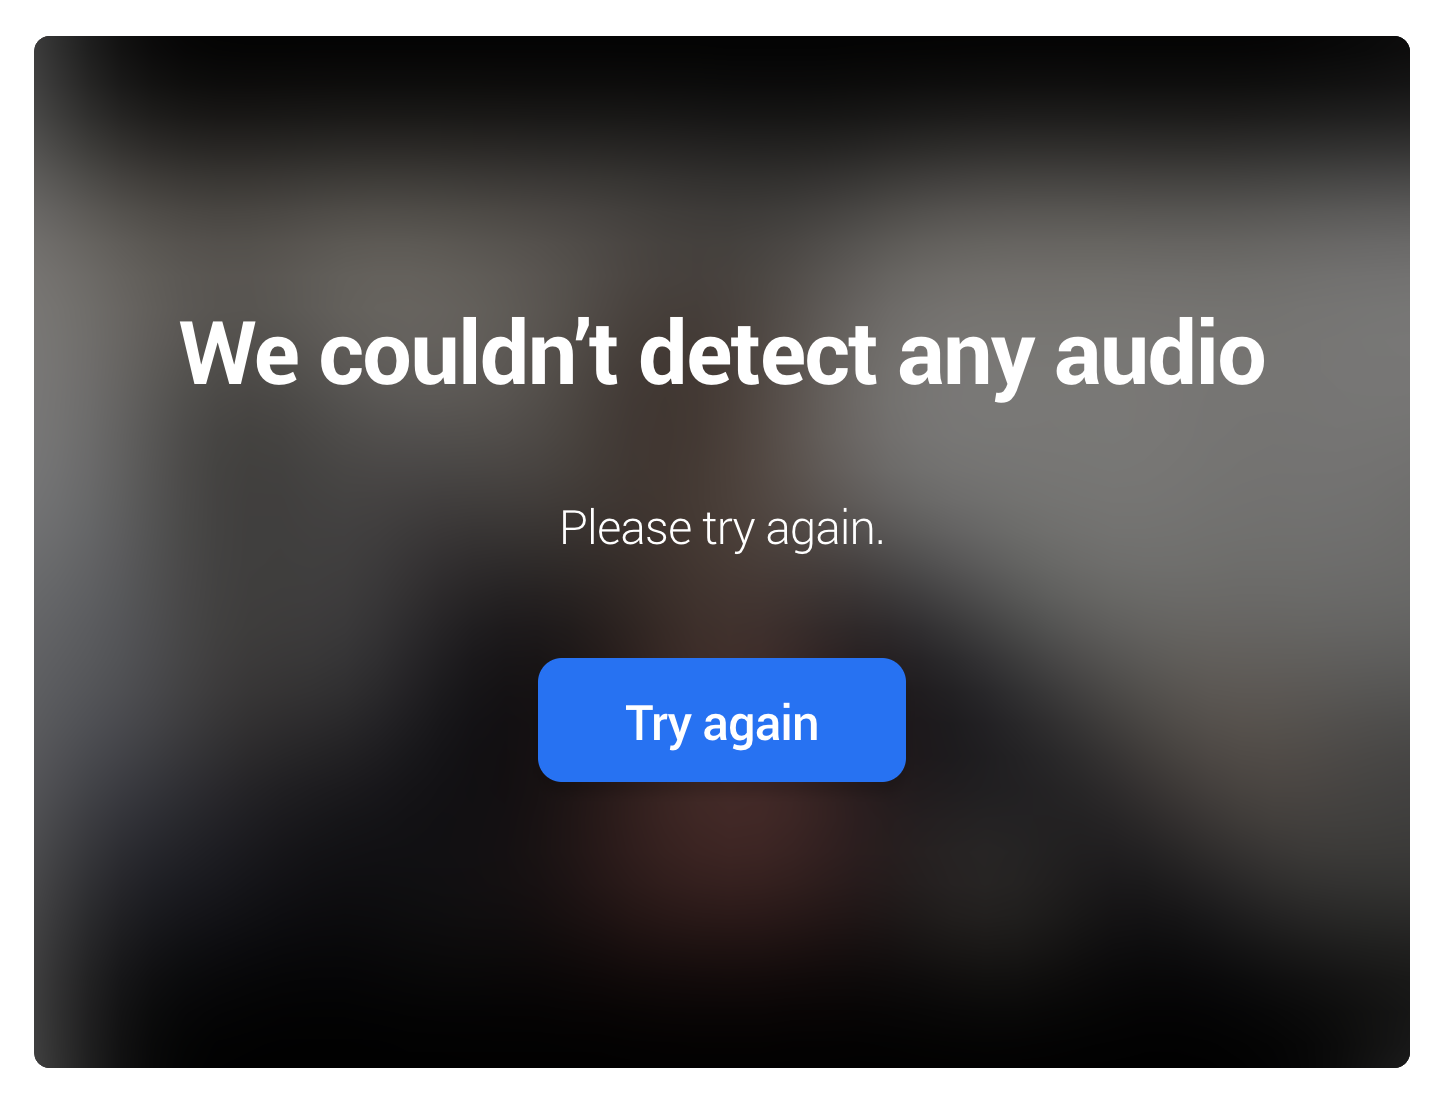 Screenshot of error in platform indicating that no audio could be detected after completing a recording